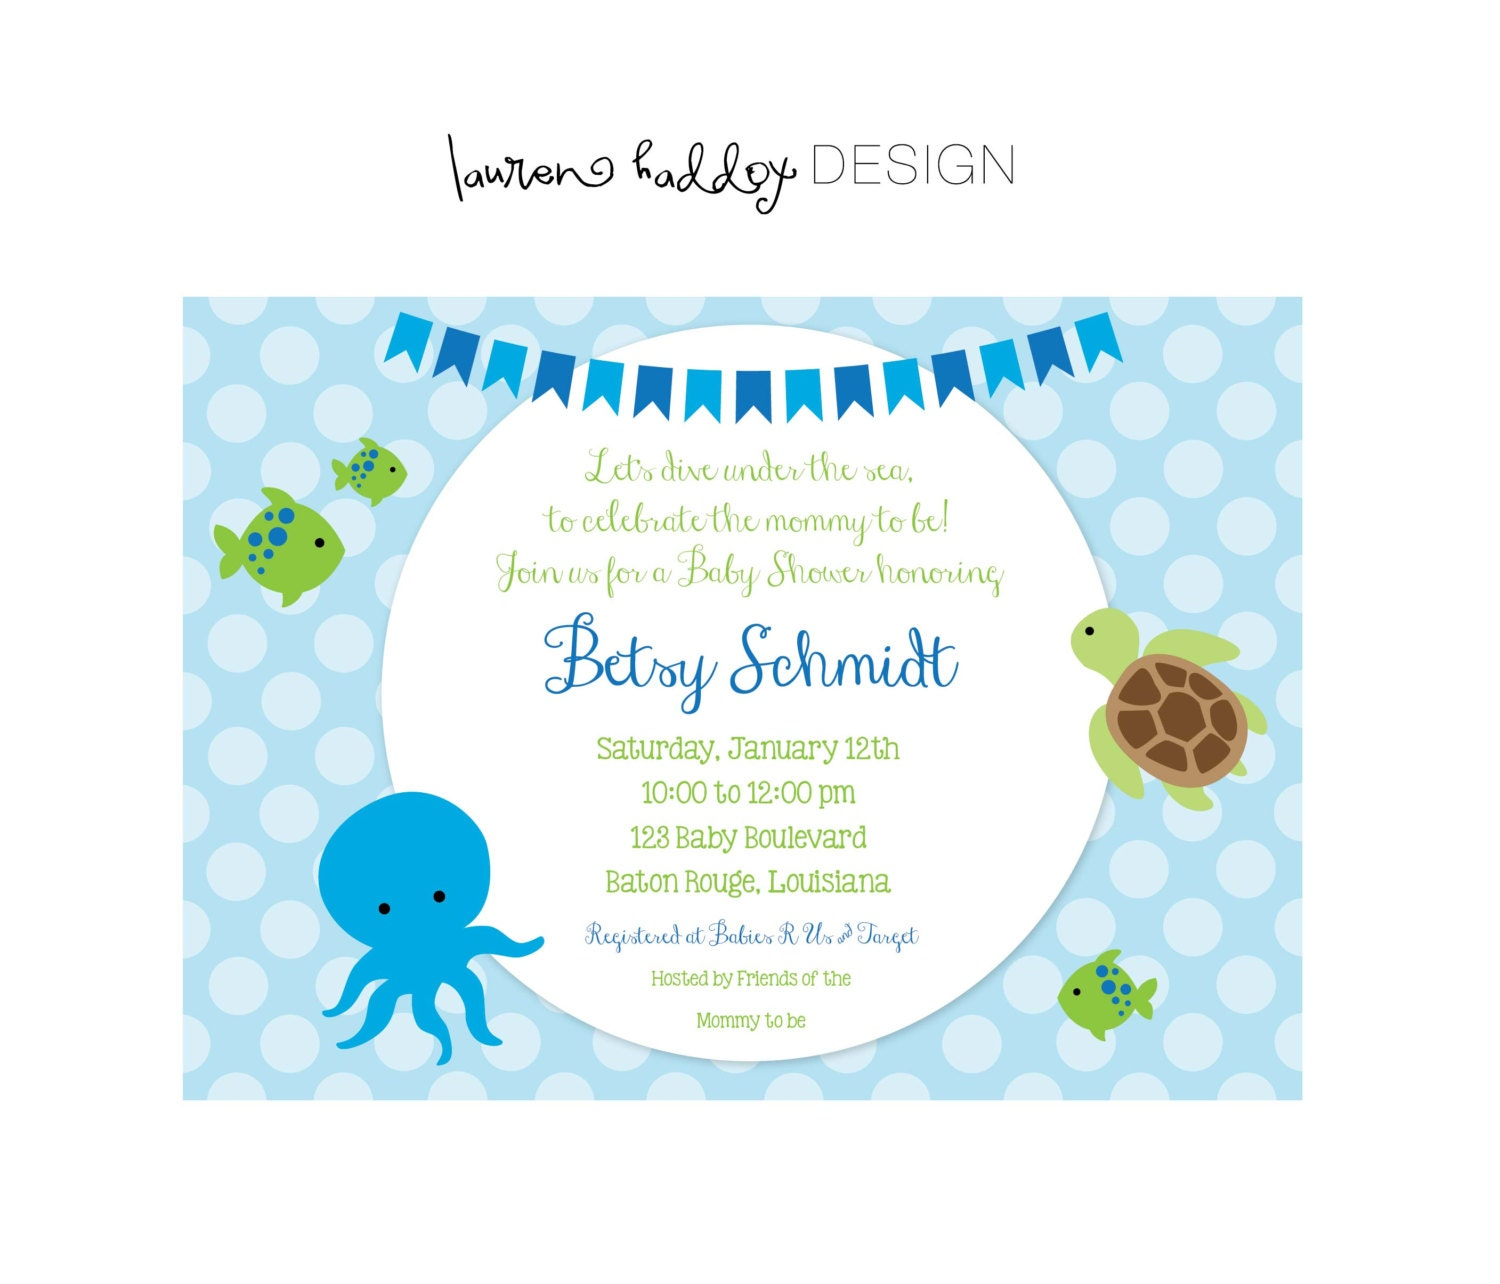 diy under the sea baby shower invitation